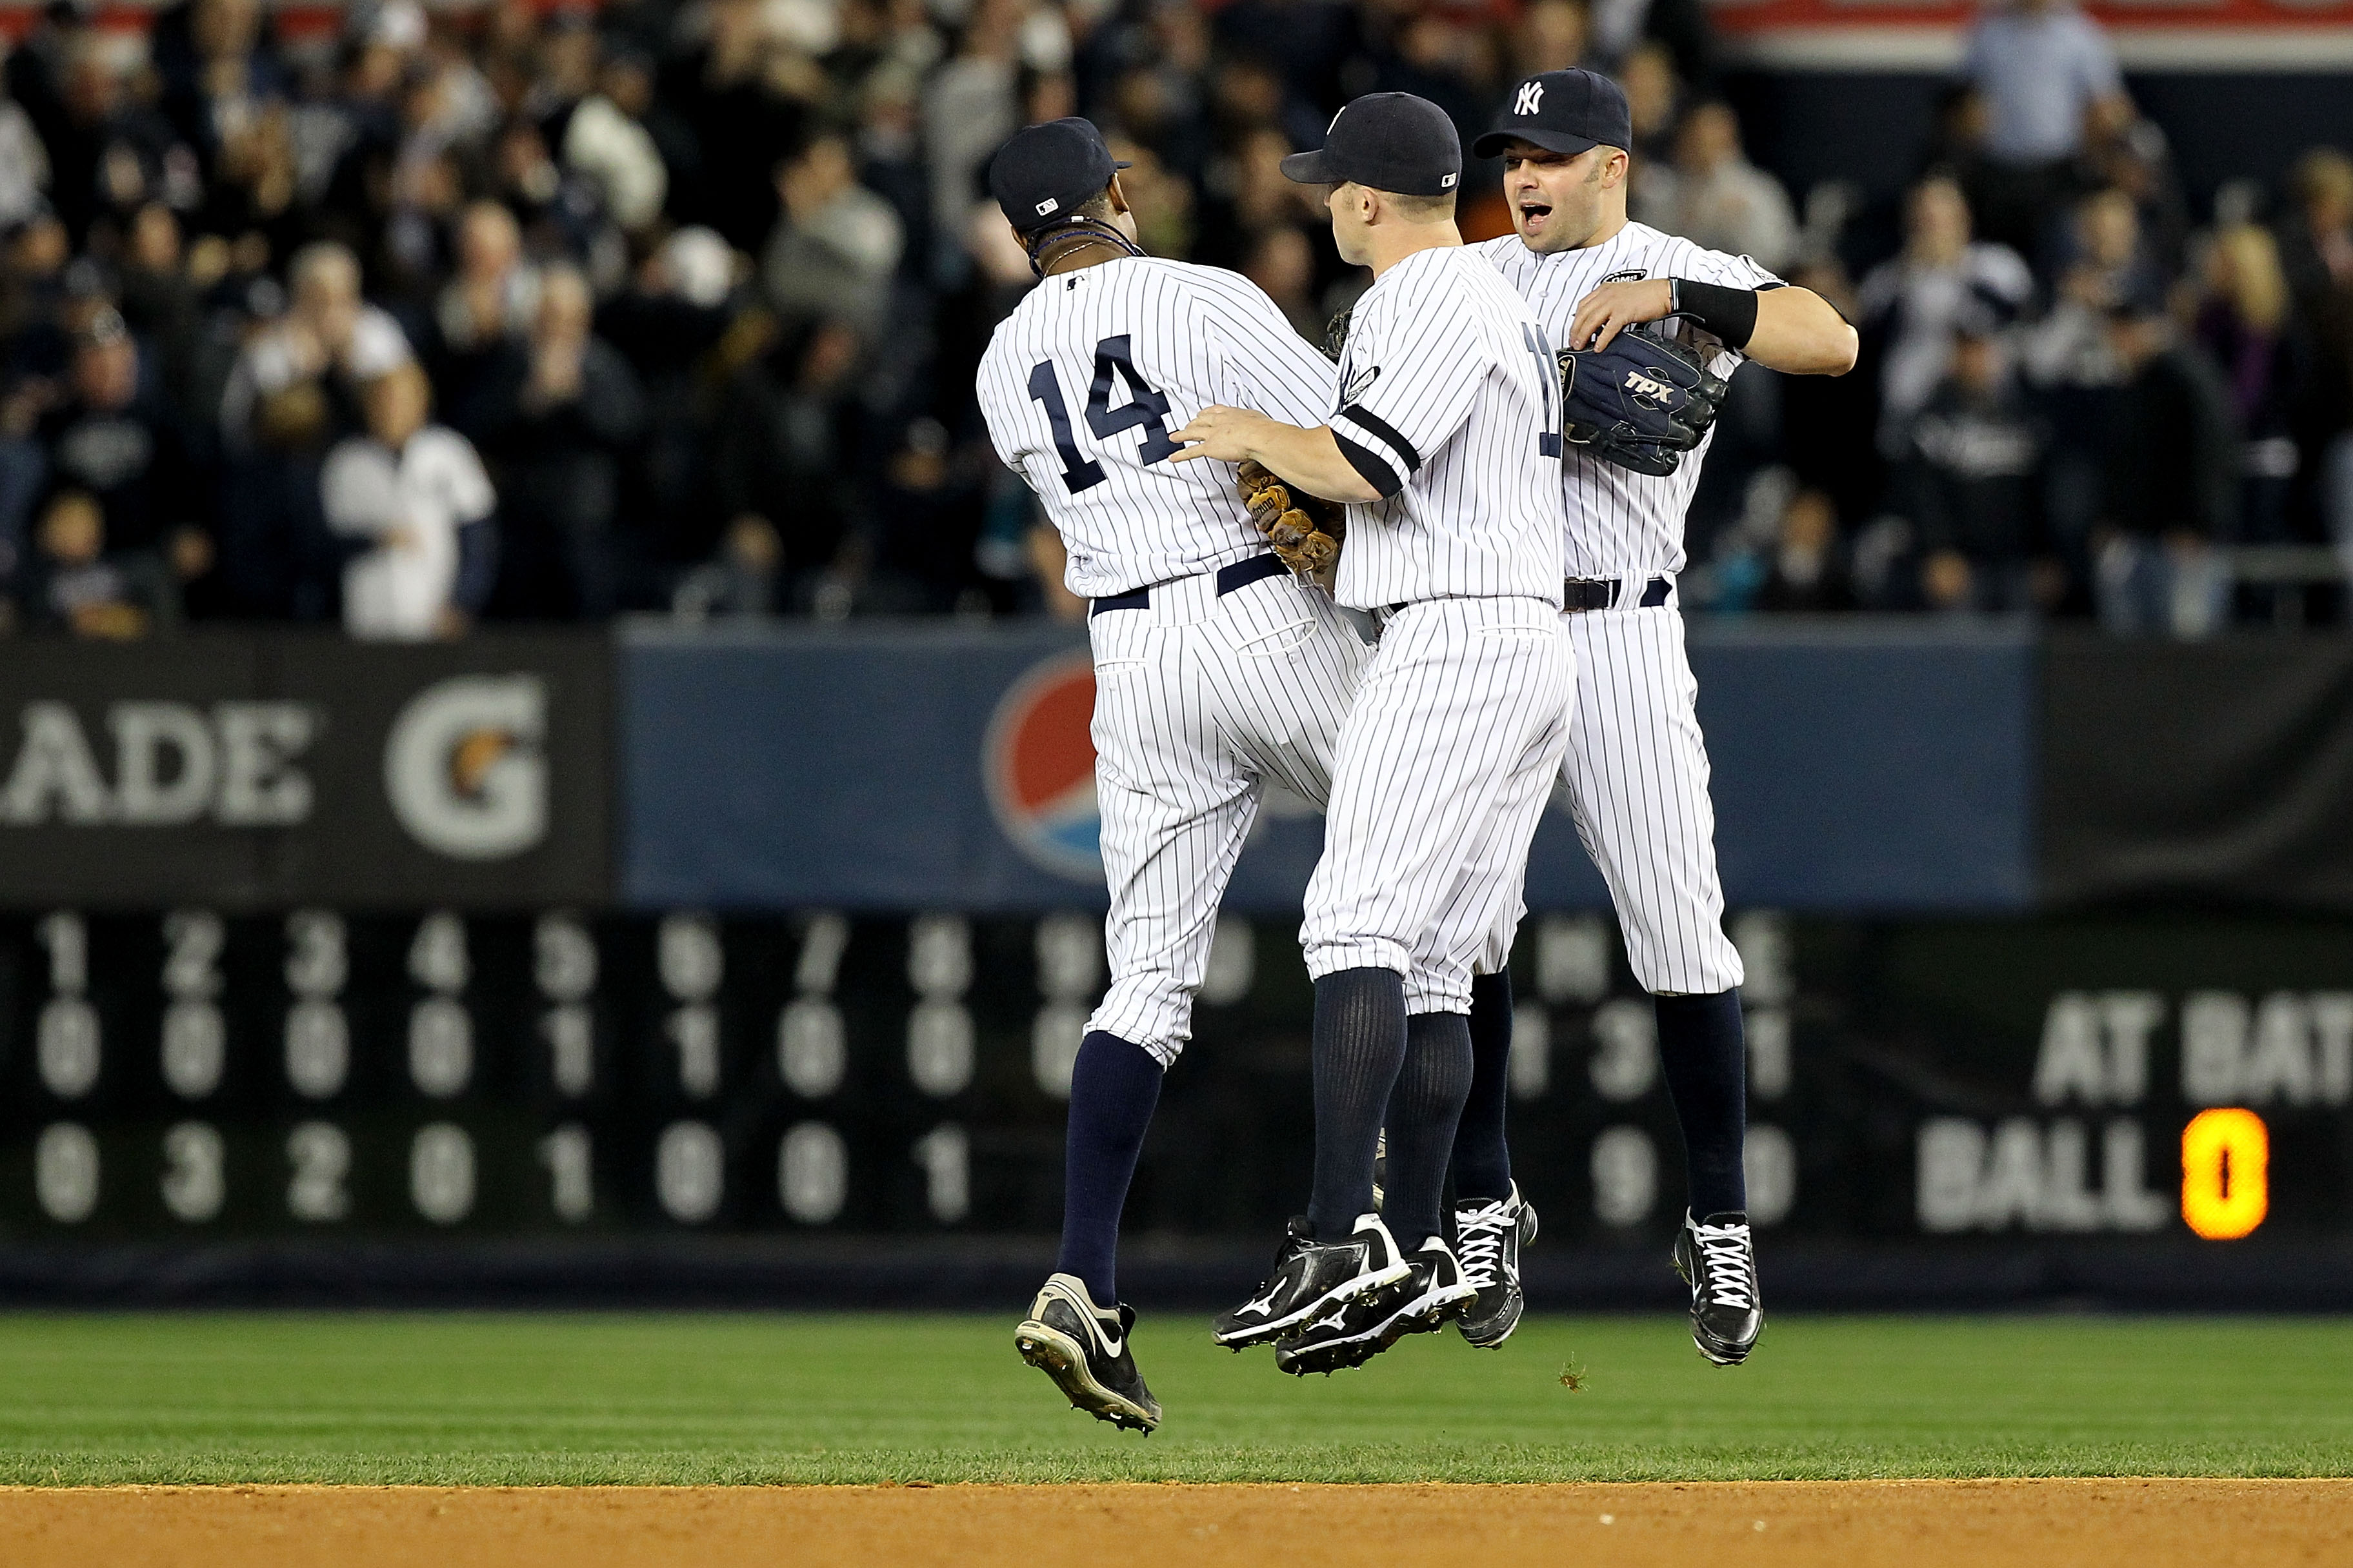 NEW YORK - OCTOBER 20:  Curtis Granderson #14, Brett Gardner #11 and Nick Swisher #33 of the New York Yankees celebrate after the Yankees won 7-2 against the Texas Rangers in Game Five of the ALCS during the 2010 MLB Playoffs at Yankee Stadium on October